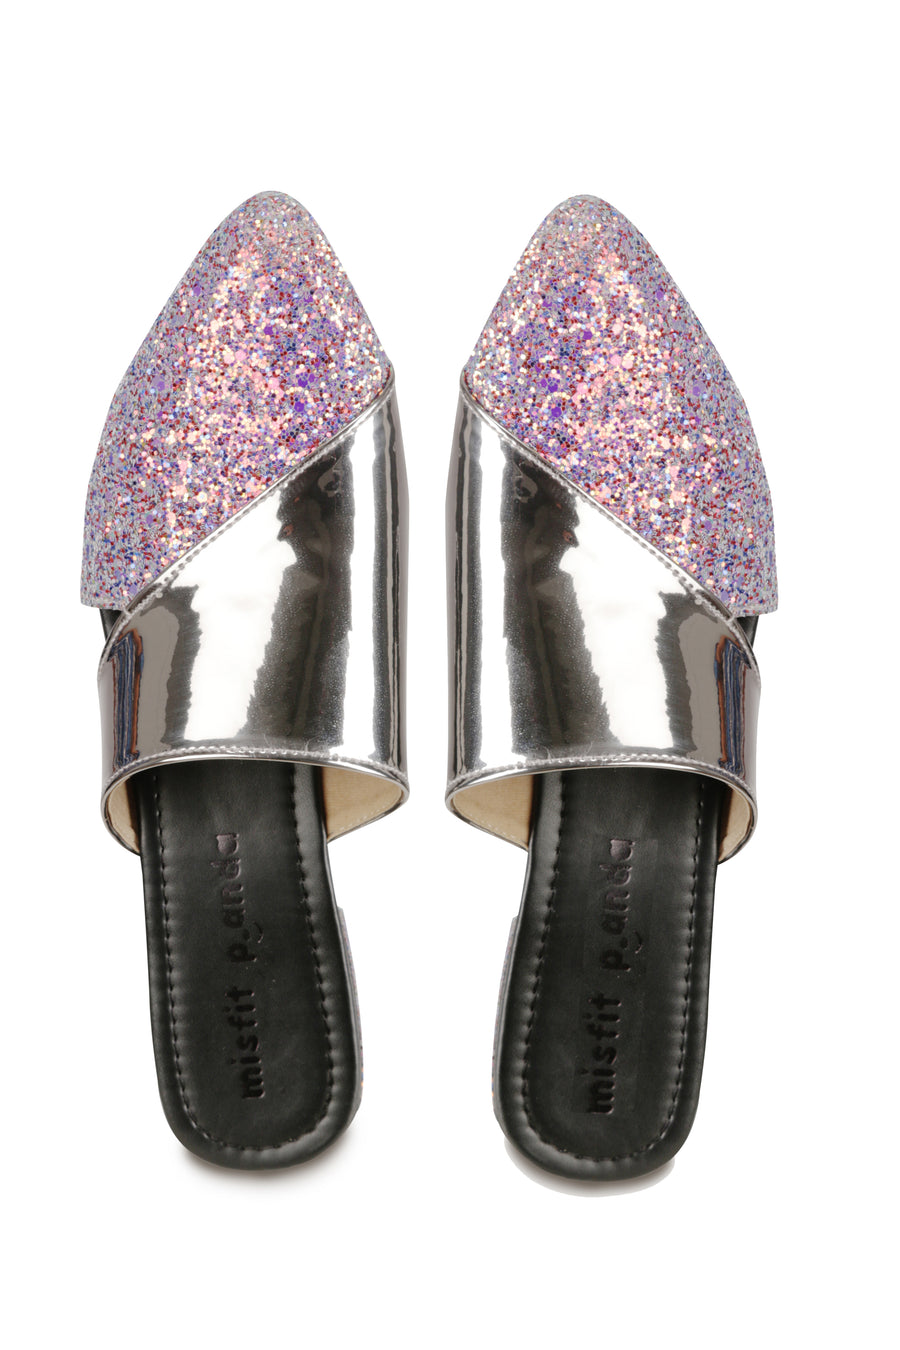 Pink shimmer with gunmetal mules